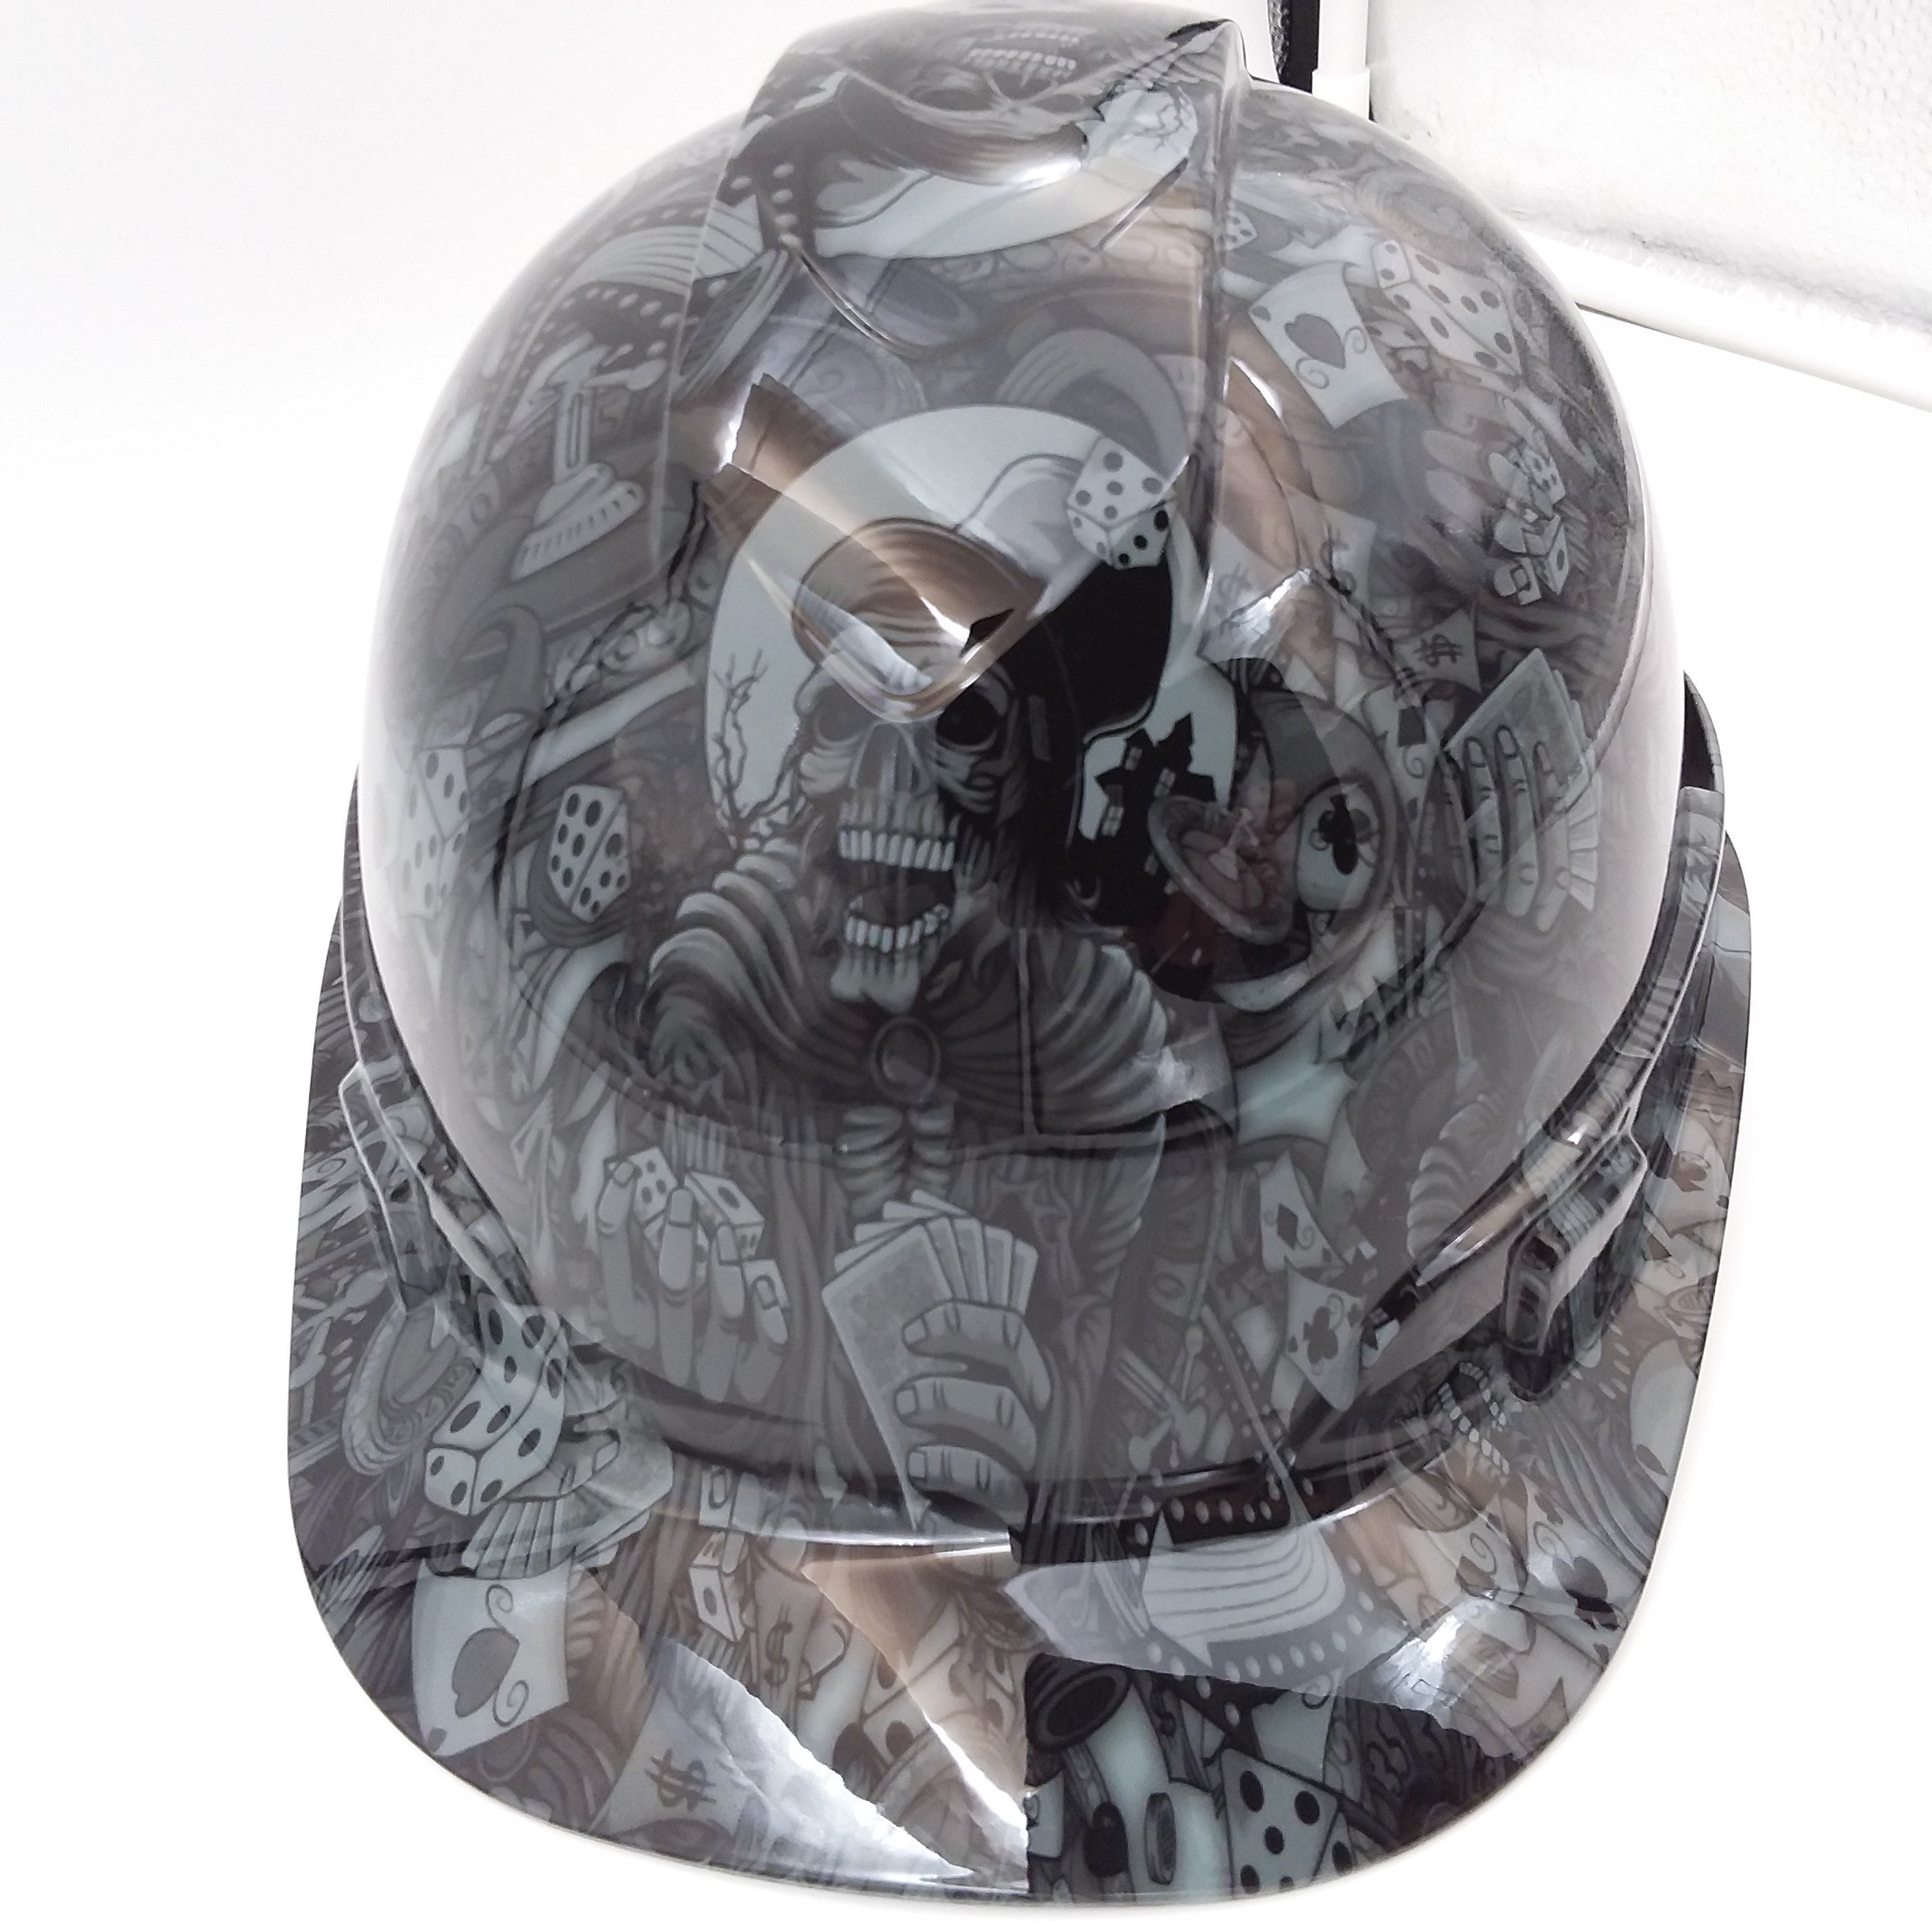 Wet Works Imaging Customized Pyramex Cap Style Gray Dealers Choice Hard Hat With Ratcheting Suspension by Wet Works Imaging